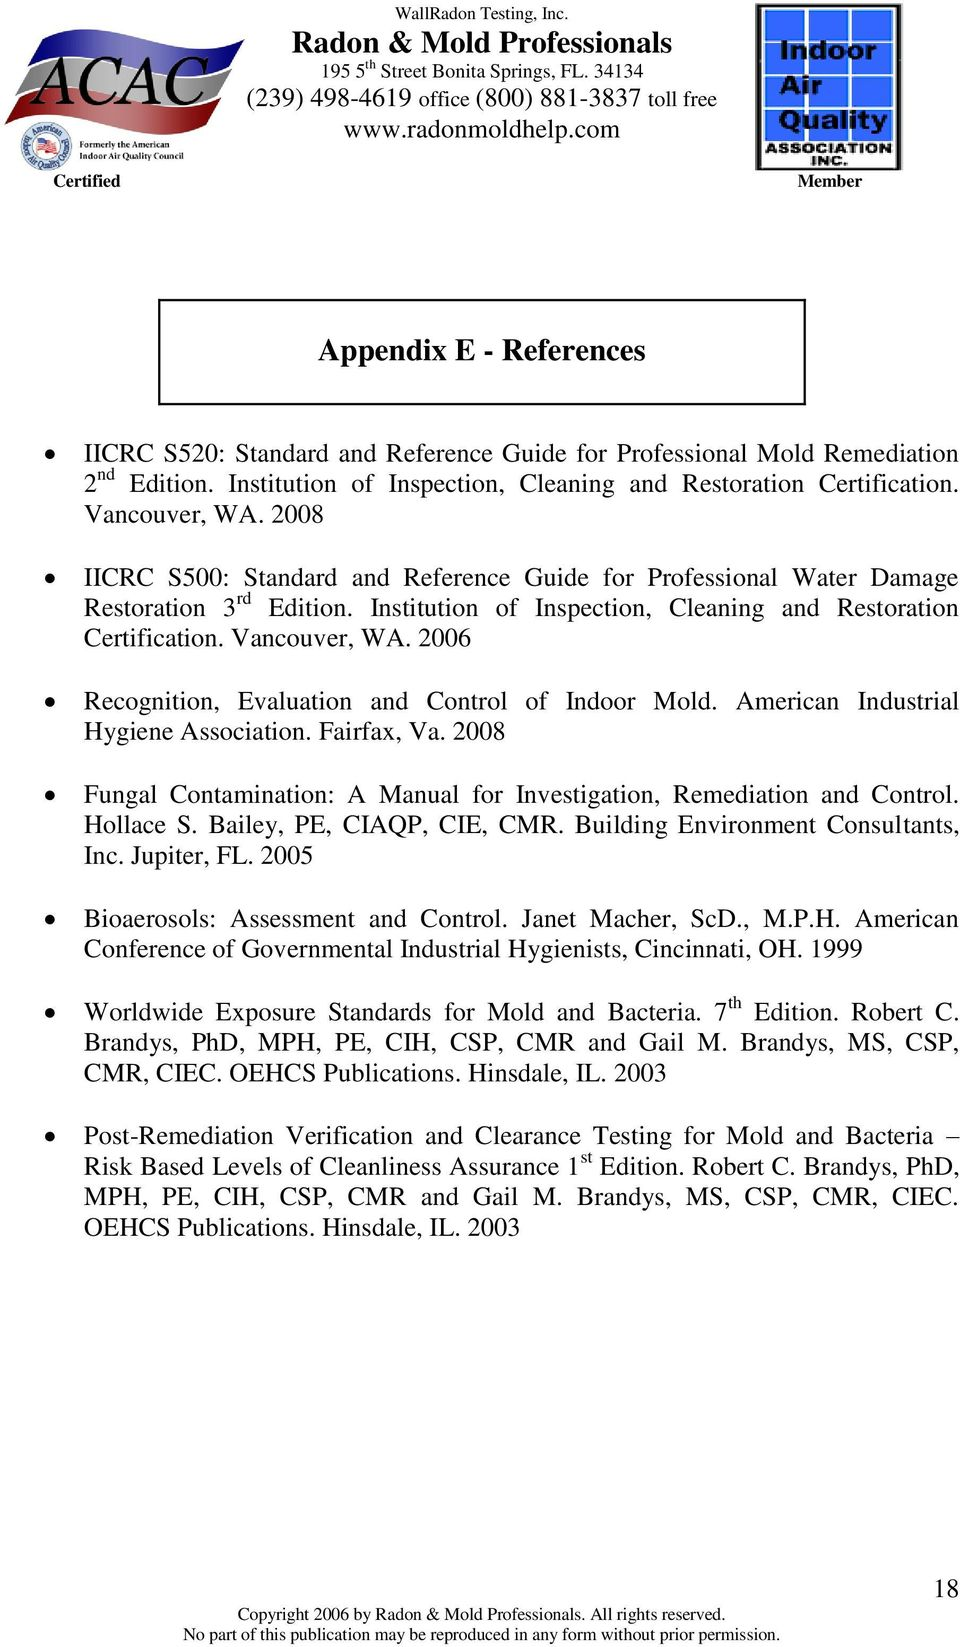 2006 Recognition, Evaluation and Control of Indoor Mold. American Industrial Hygiene Association. Fairfax, Va. 2008 Fungal Contamination: A Manual for Investigation, Remediation and Control.